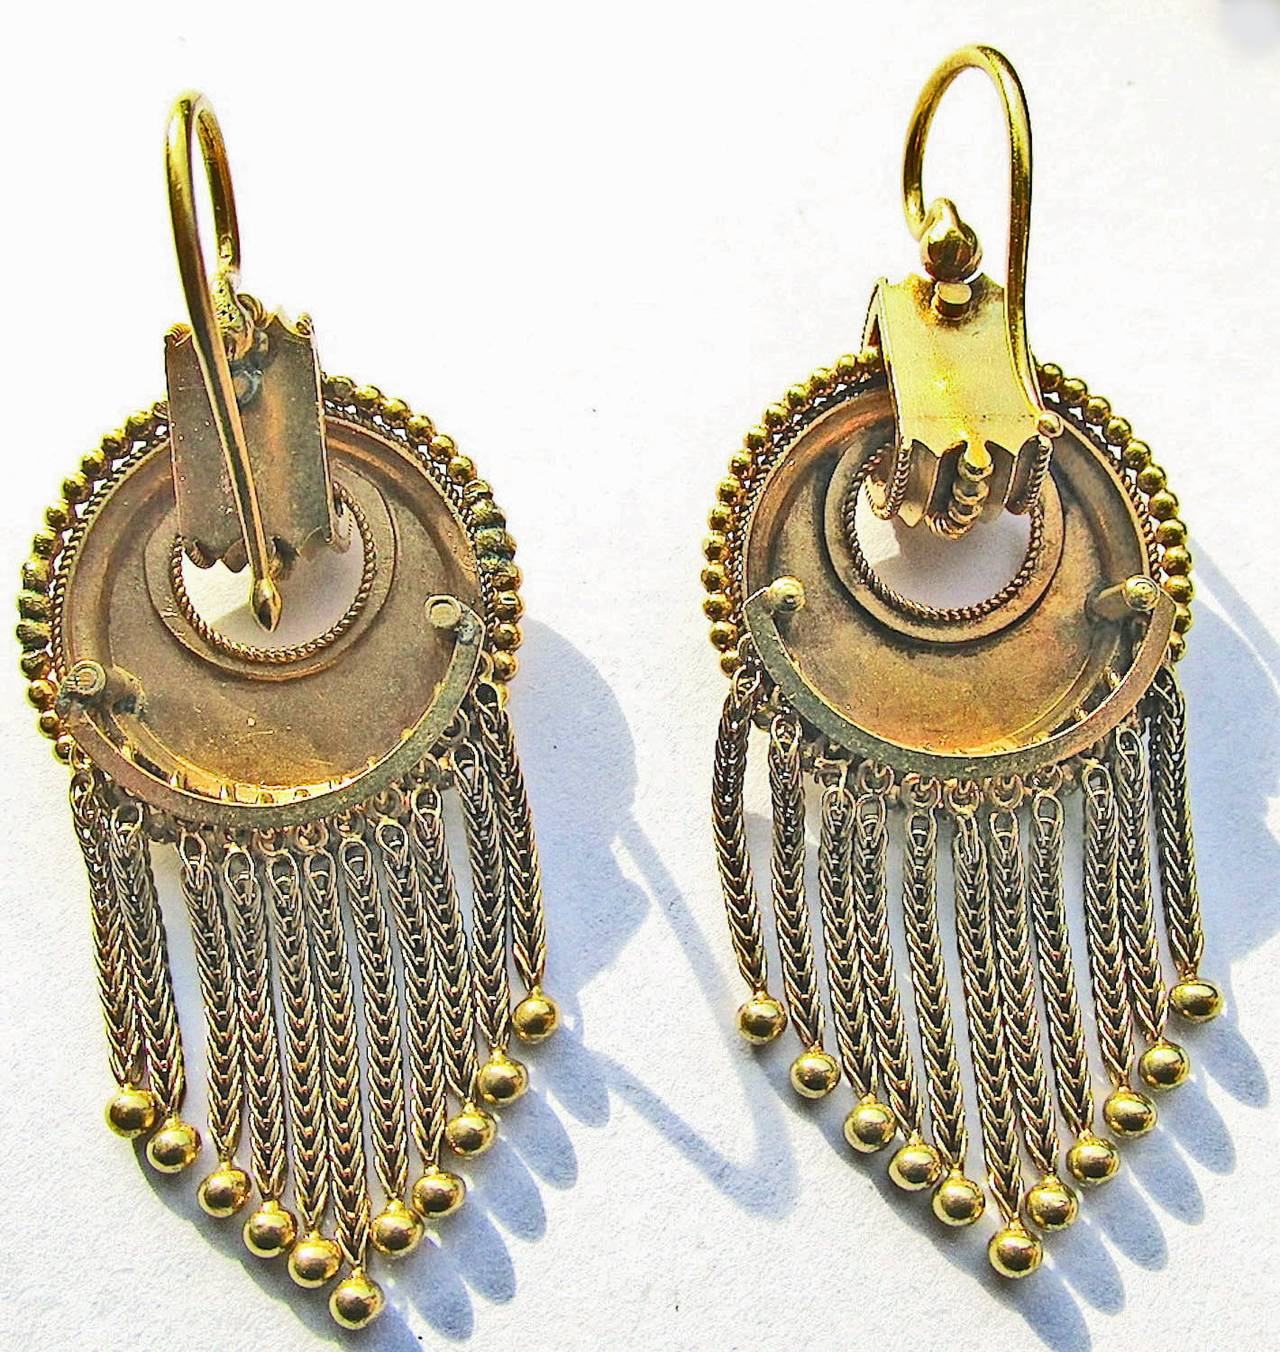 Wonderful Victorian 18k Gold Fringe Earrings That Will Swing And Sway As You Walk Down The